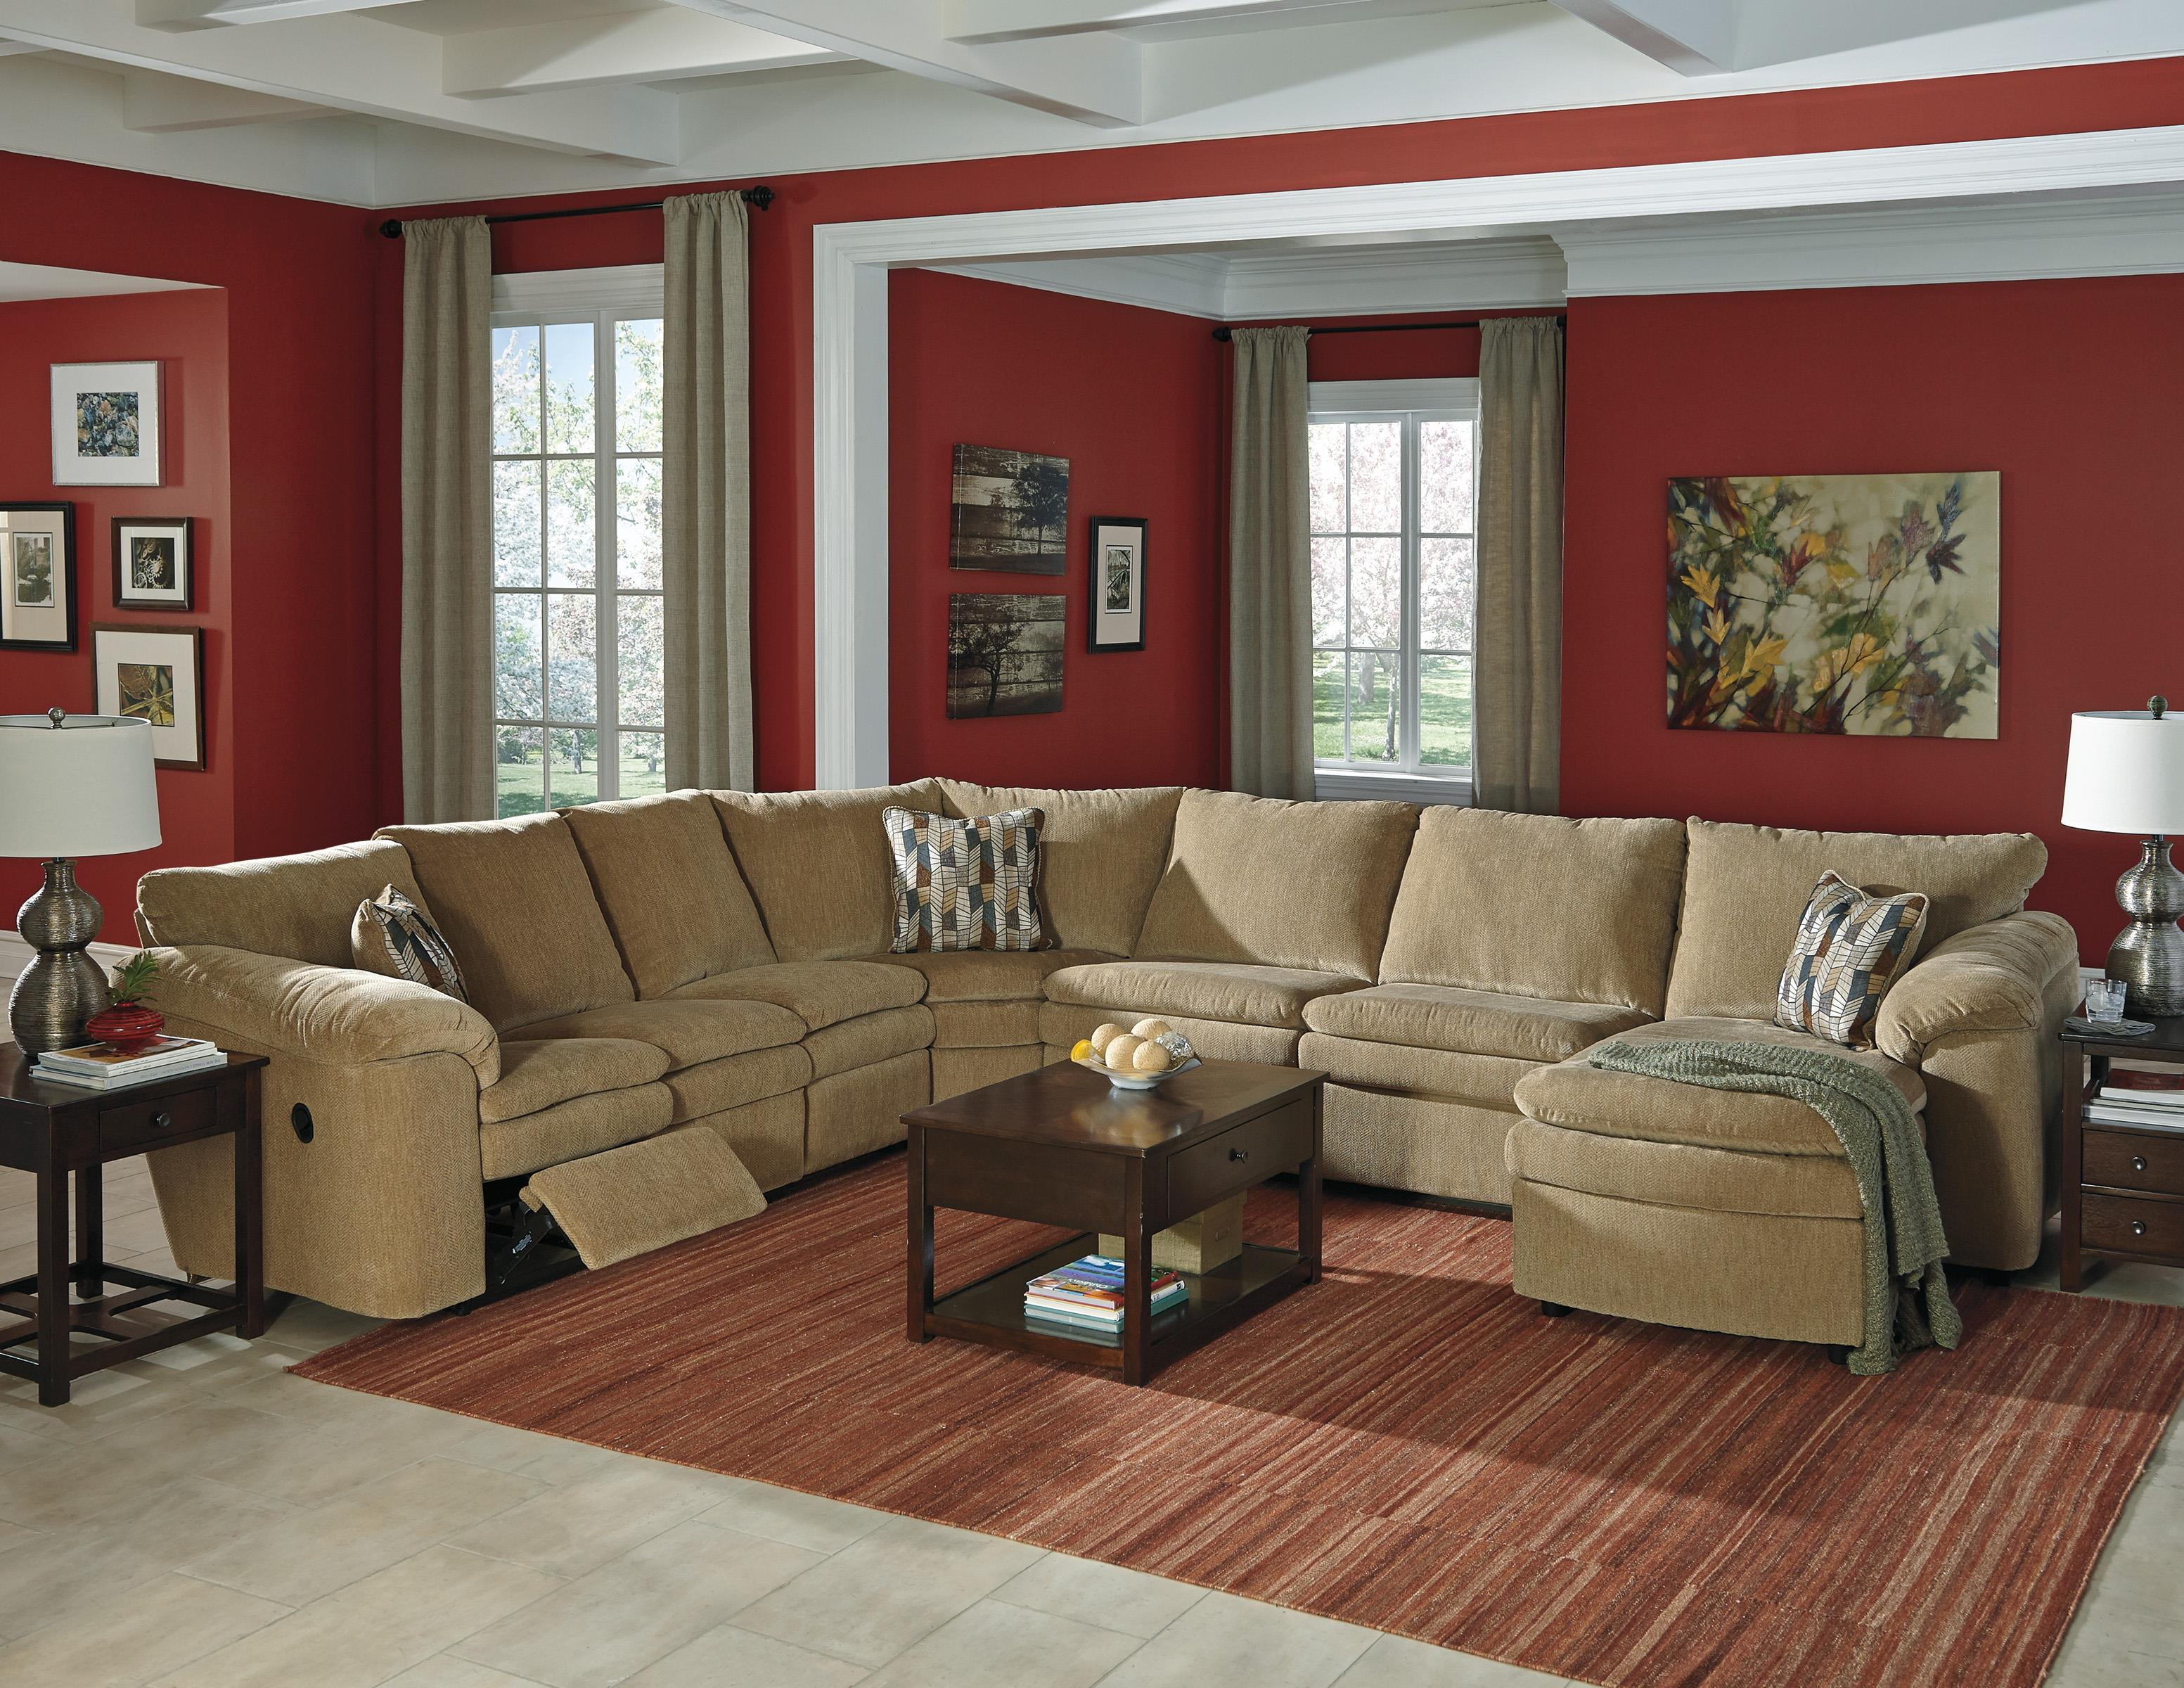 Signature Design by Ashley Coats Casual Contemporary 4 Piece